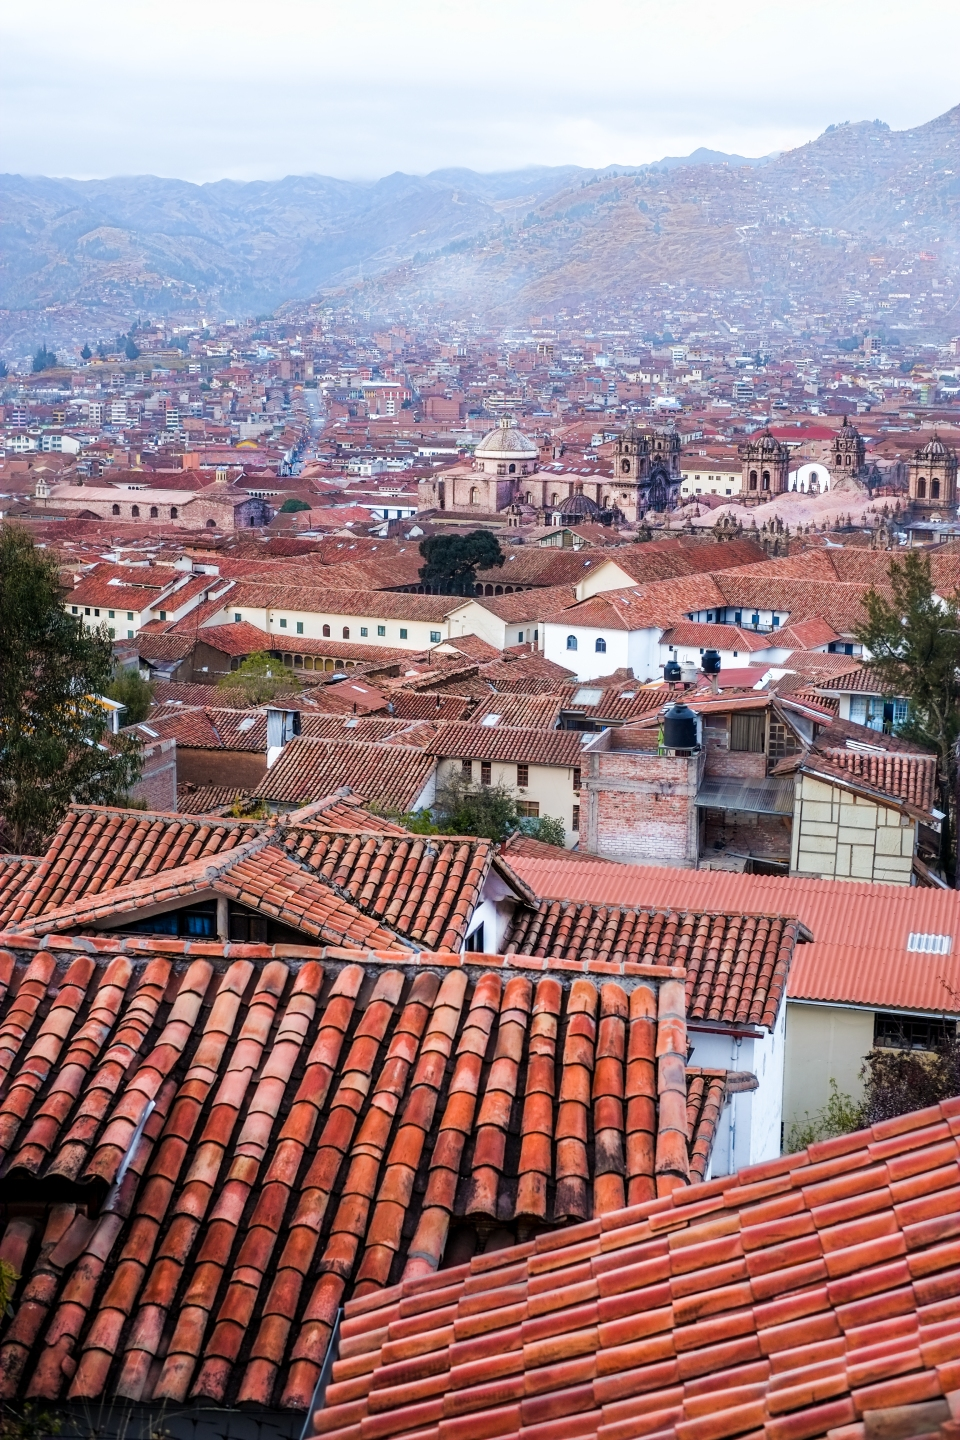 The rooftops of Cusco